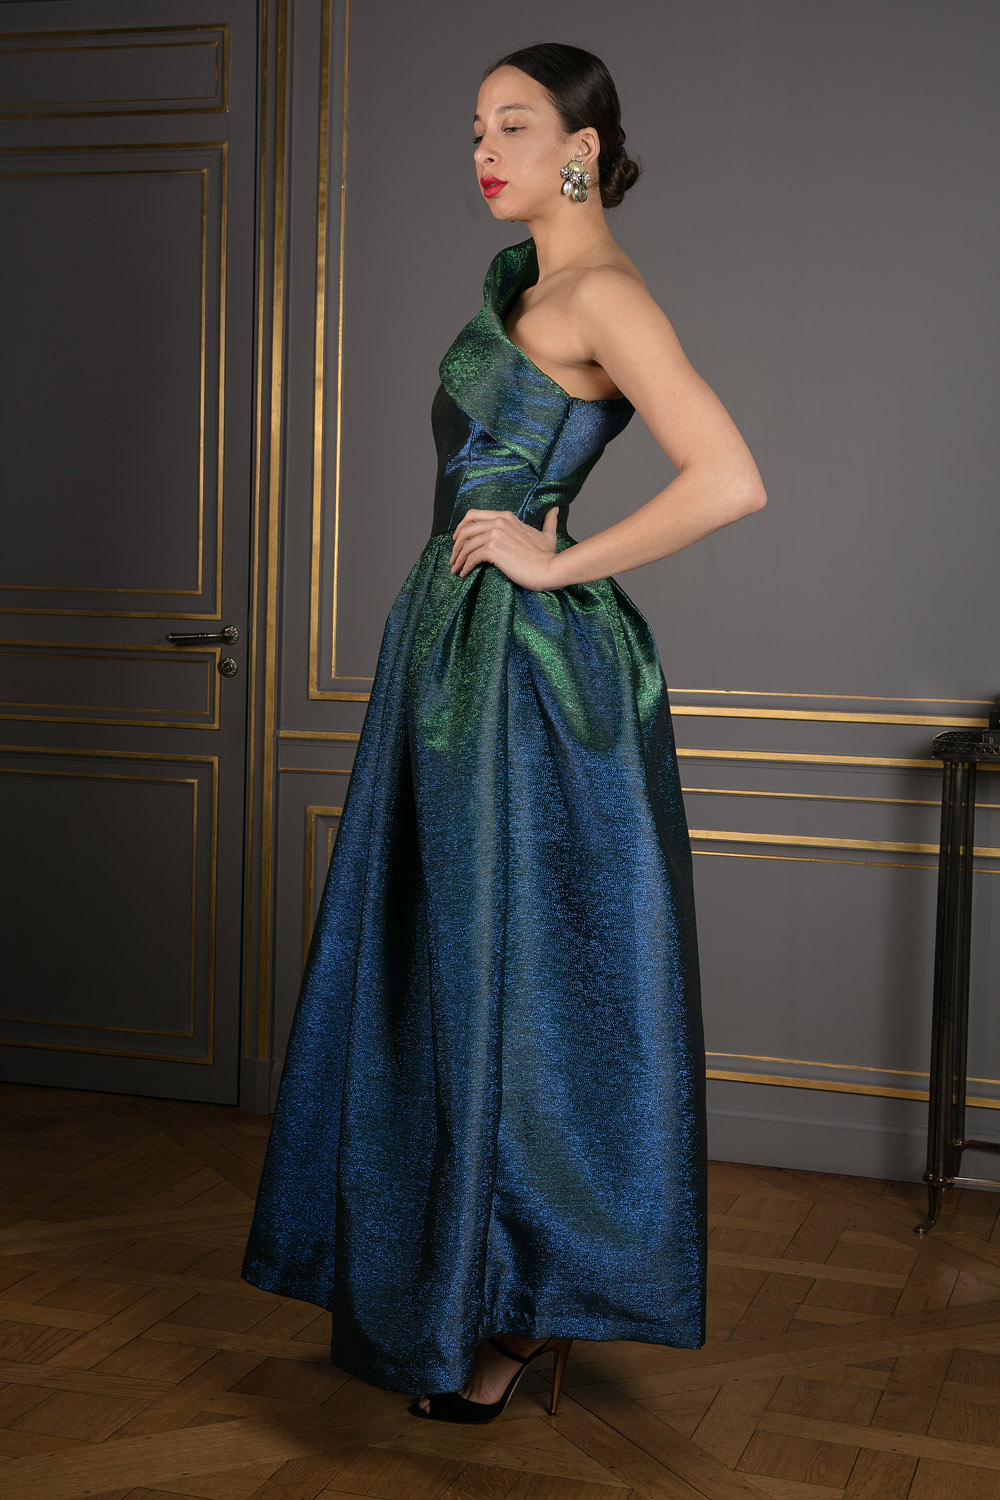 Floor-length chameleon dress